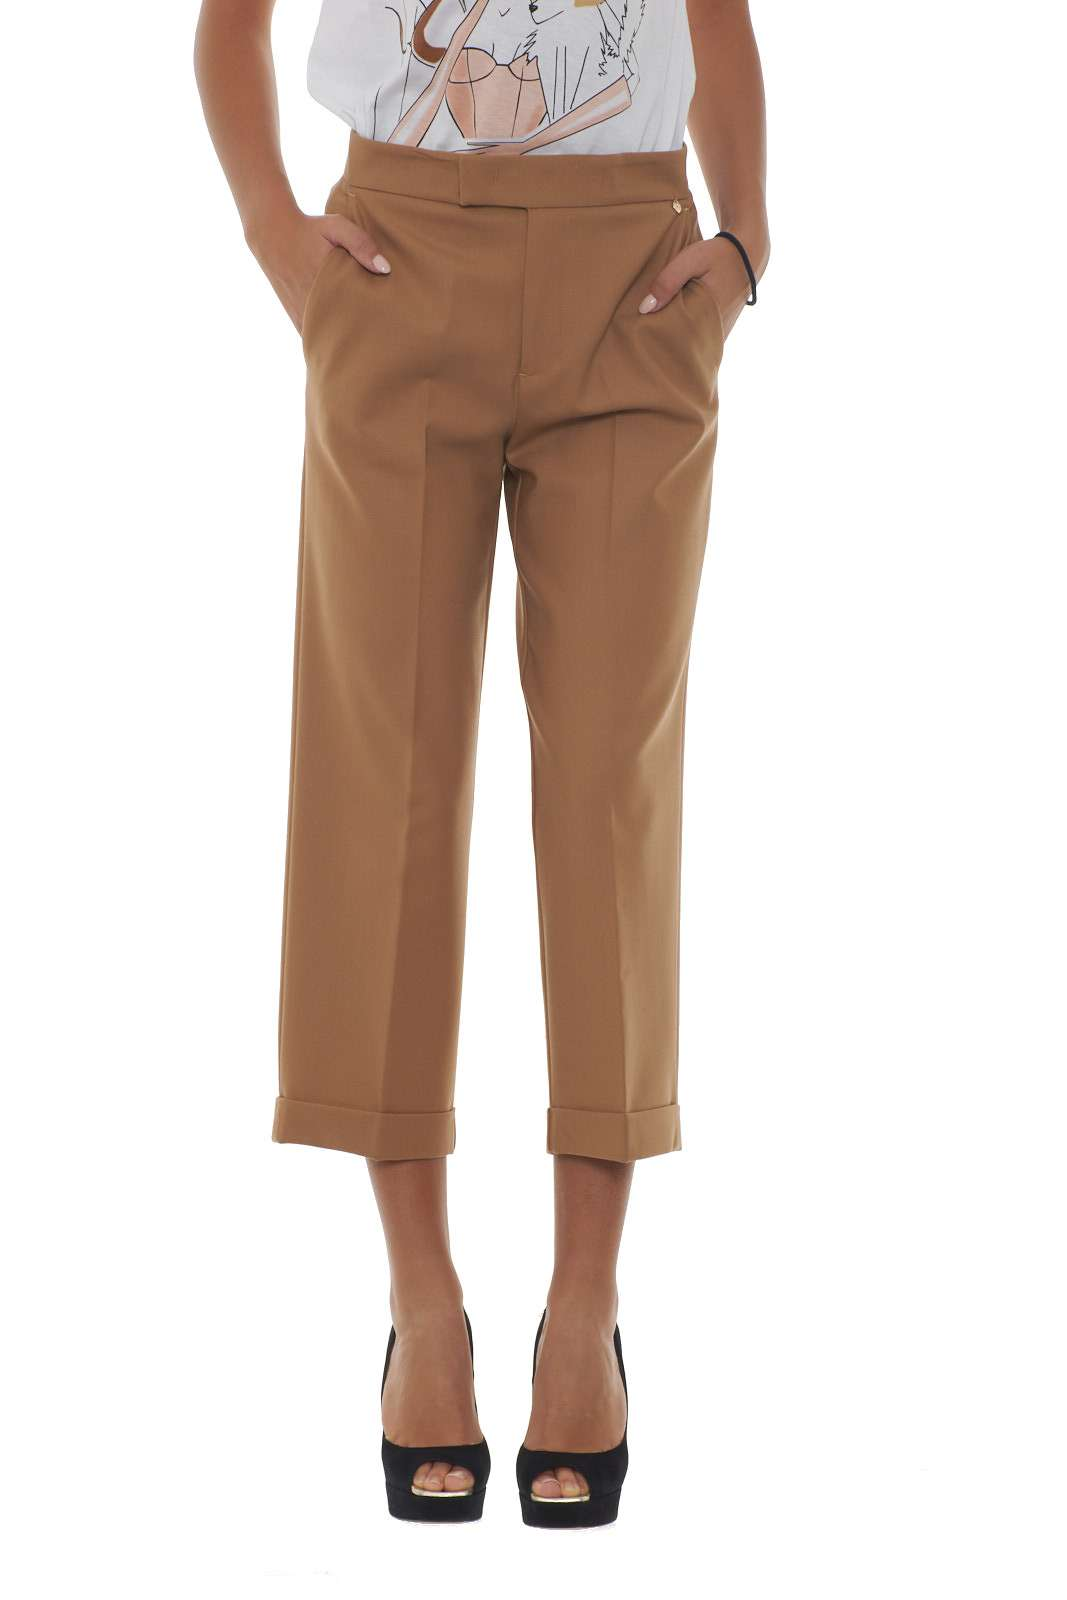 https://www.parmax.com/media/catalog/product/a/i/AI-outlet_parmax-pantaloni-donna-Twin-Set-192TT2455-A.jpg